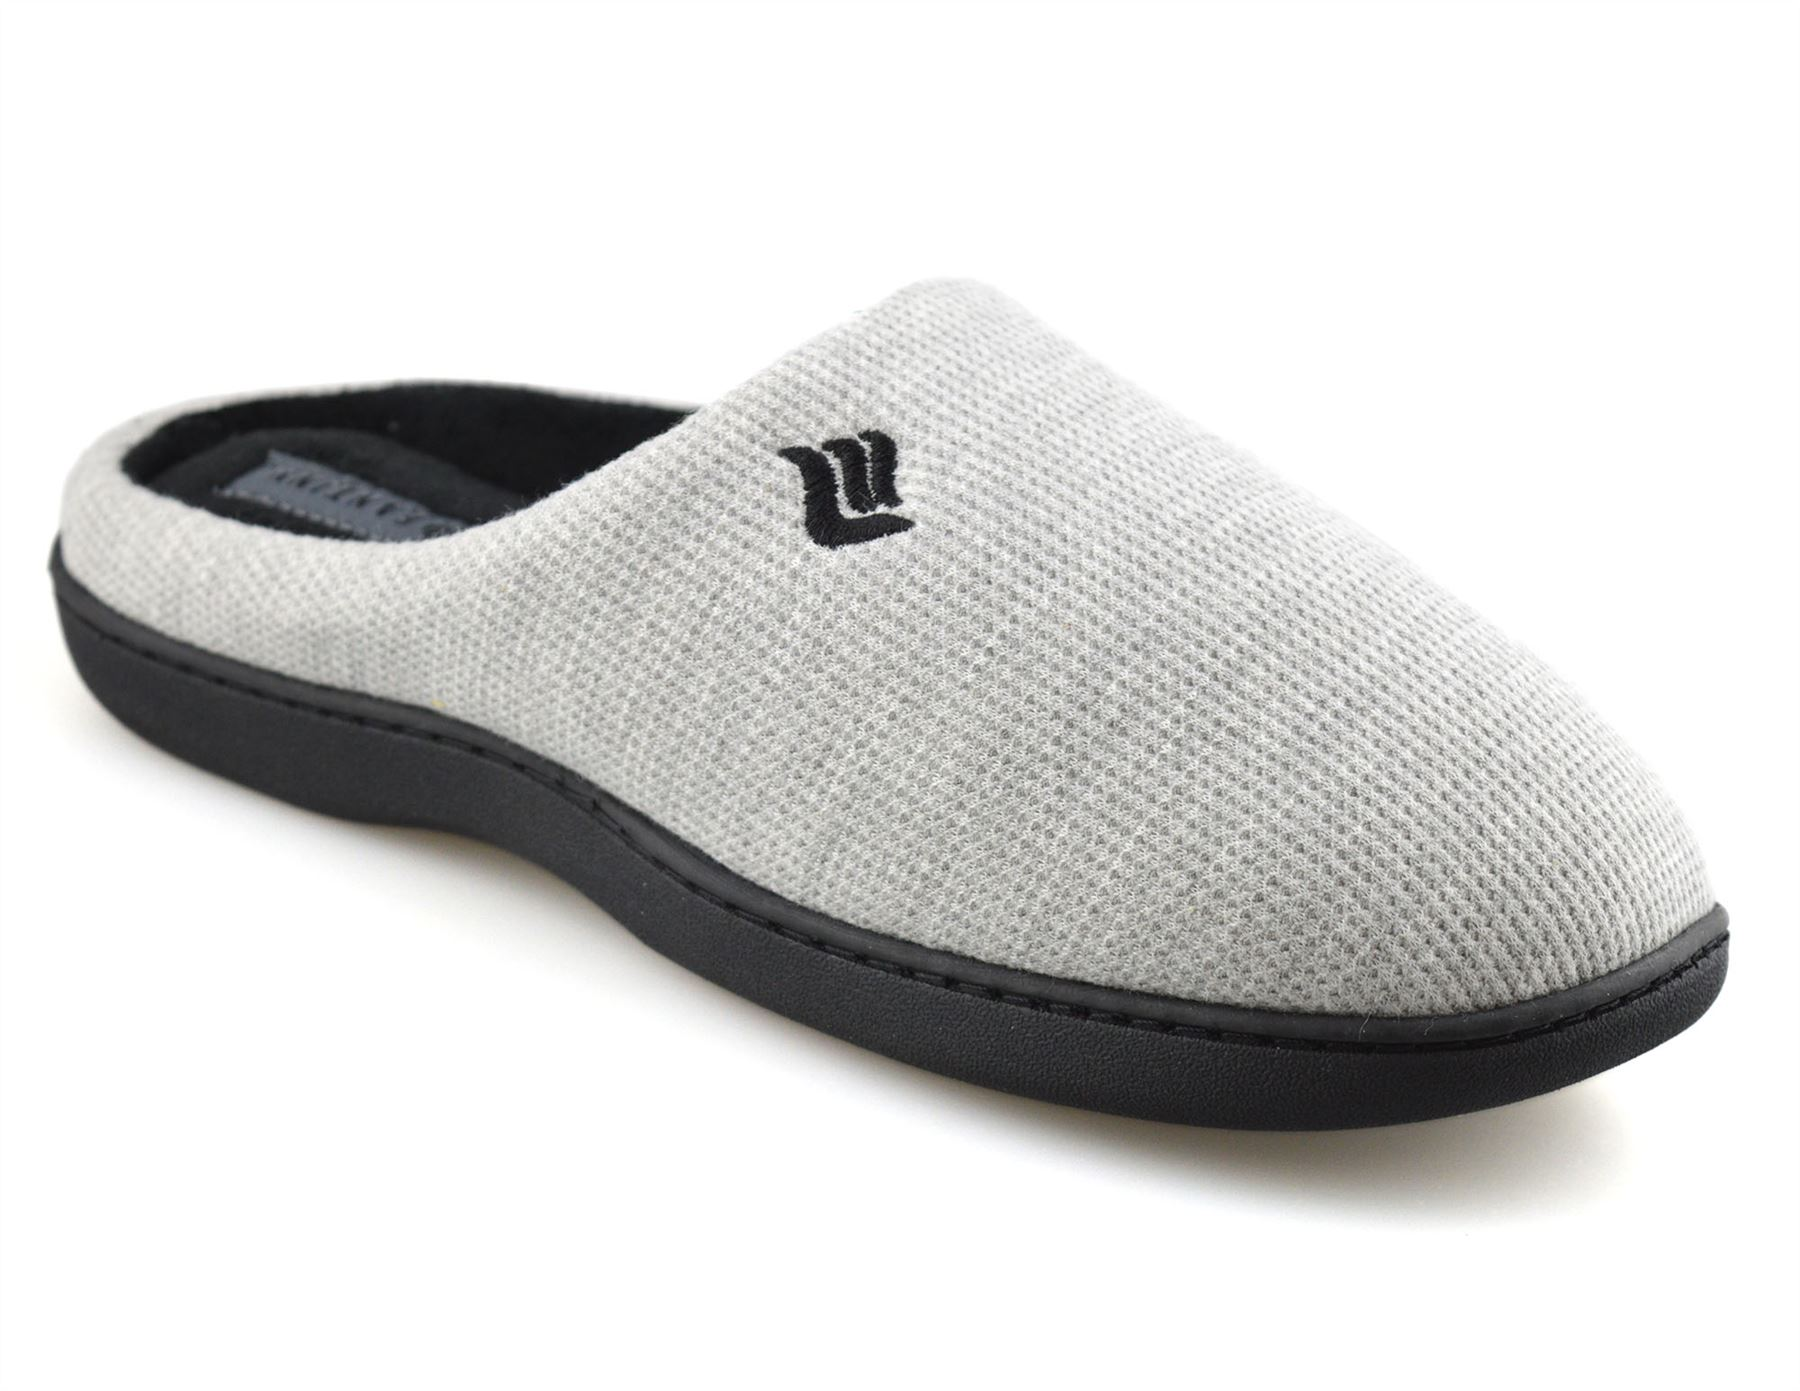 Mens-Memory-Foam-Warm-Fleece-Lined-Cotton-Slippers-Slip-On-Clog-Mules-Shoes-Size thumbnail 28